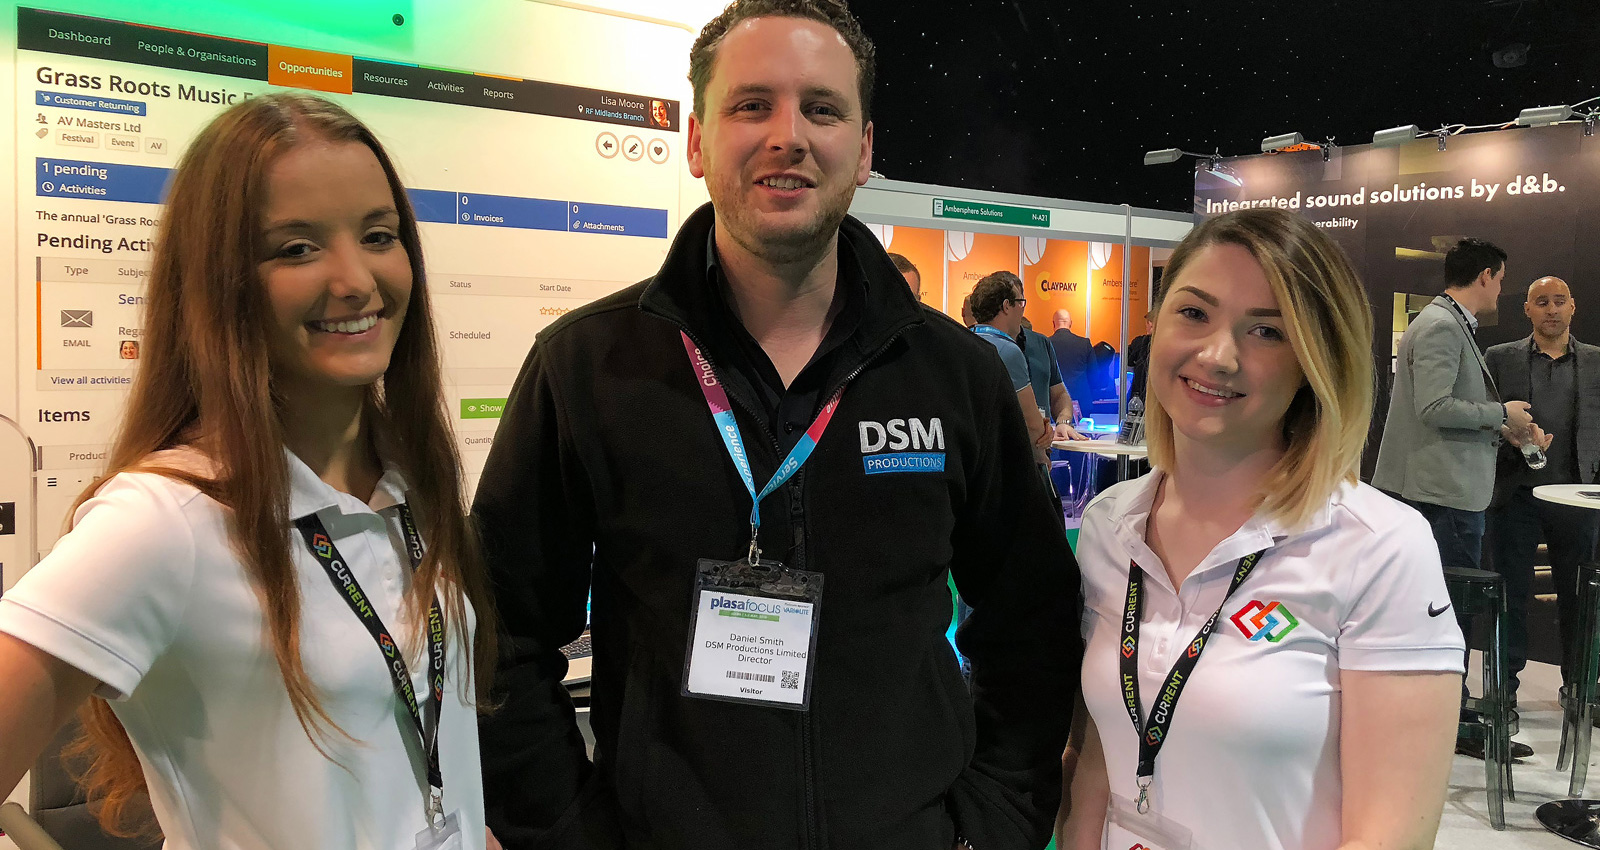 DSM Productions dropped by to say hi to the Current RMS team